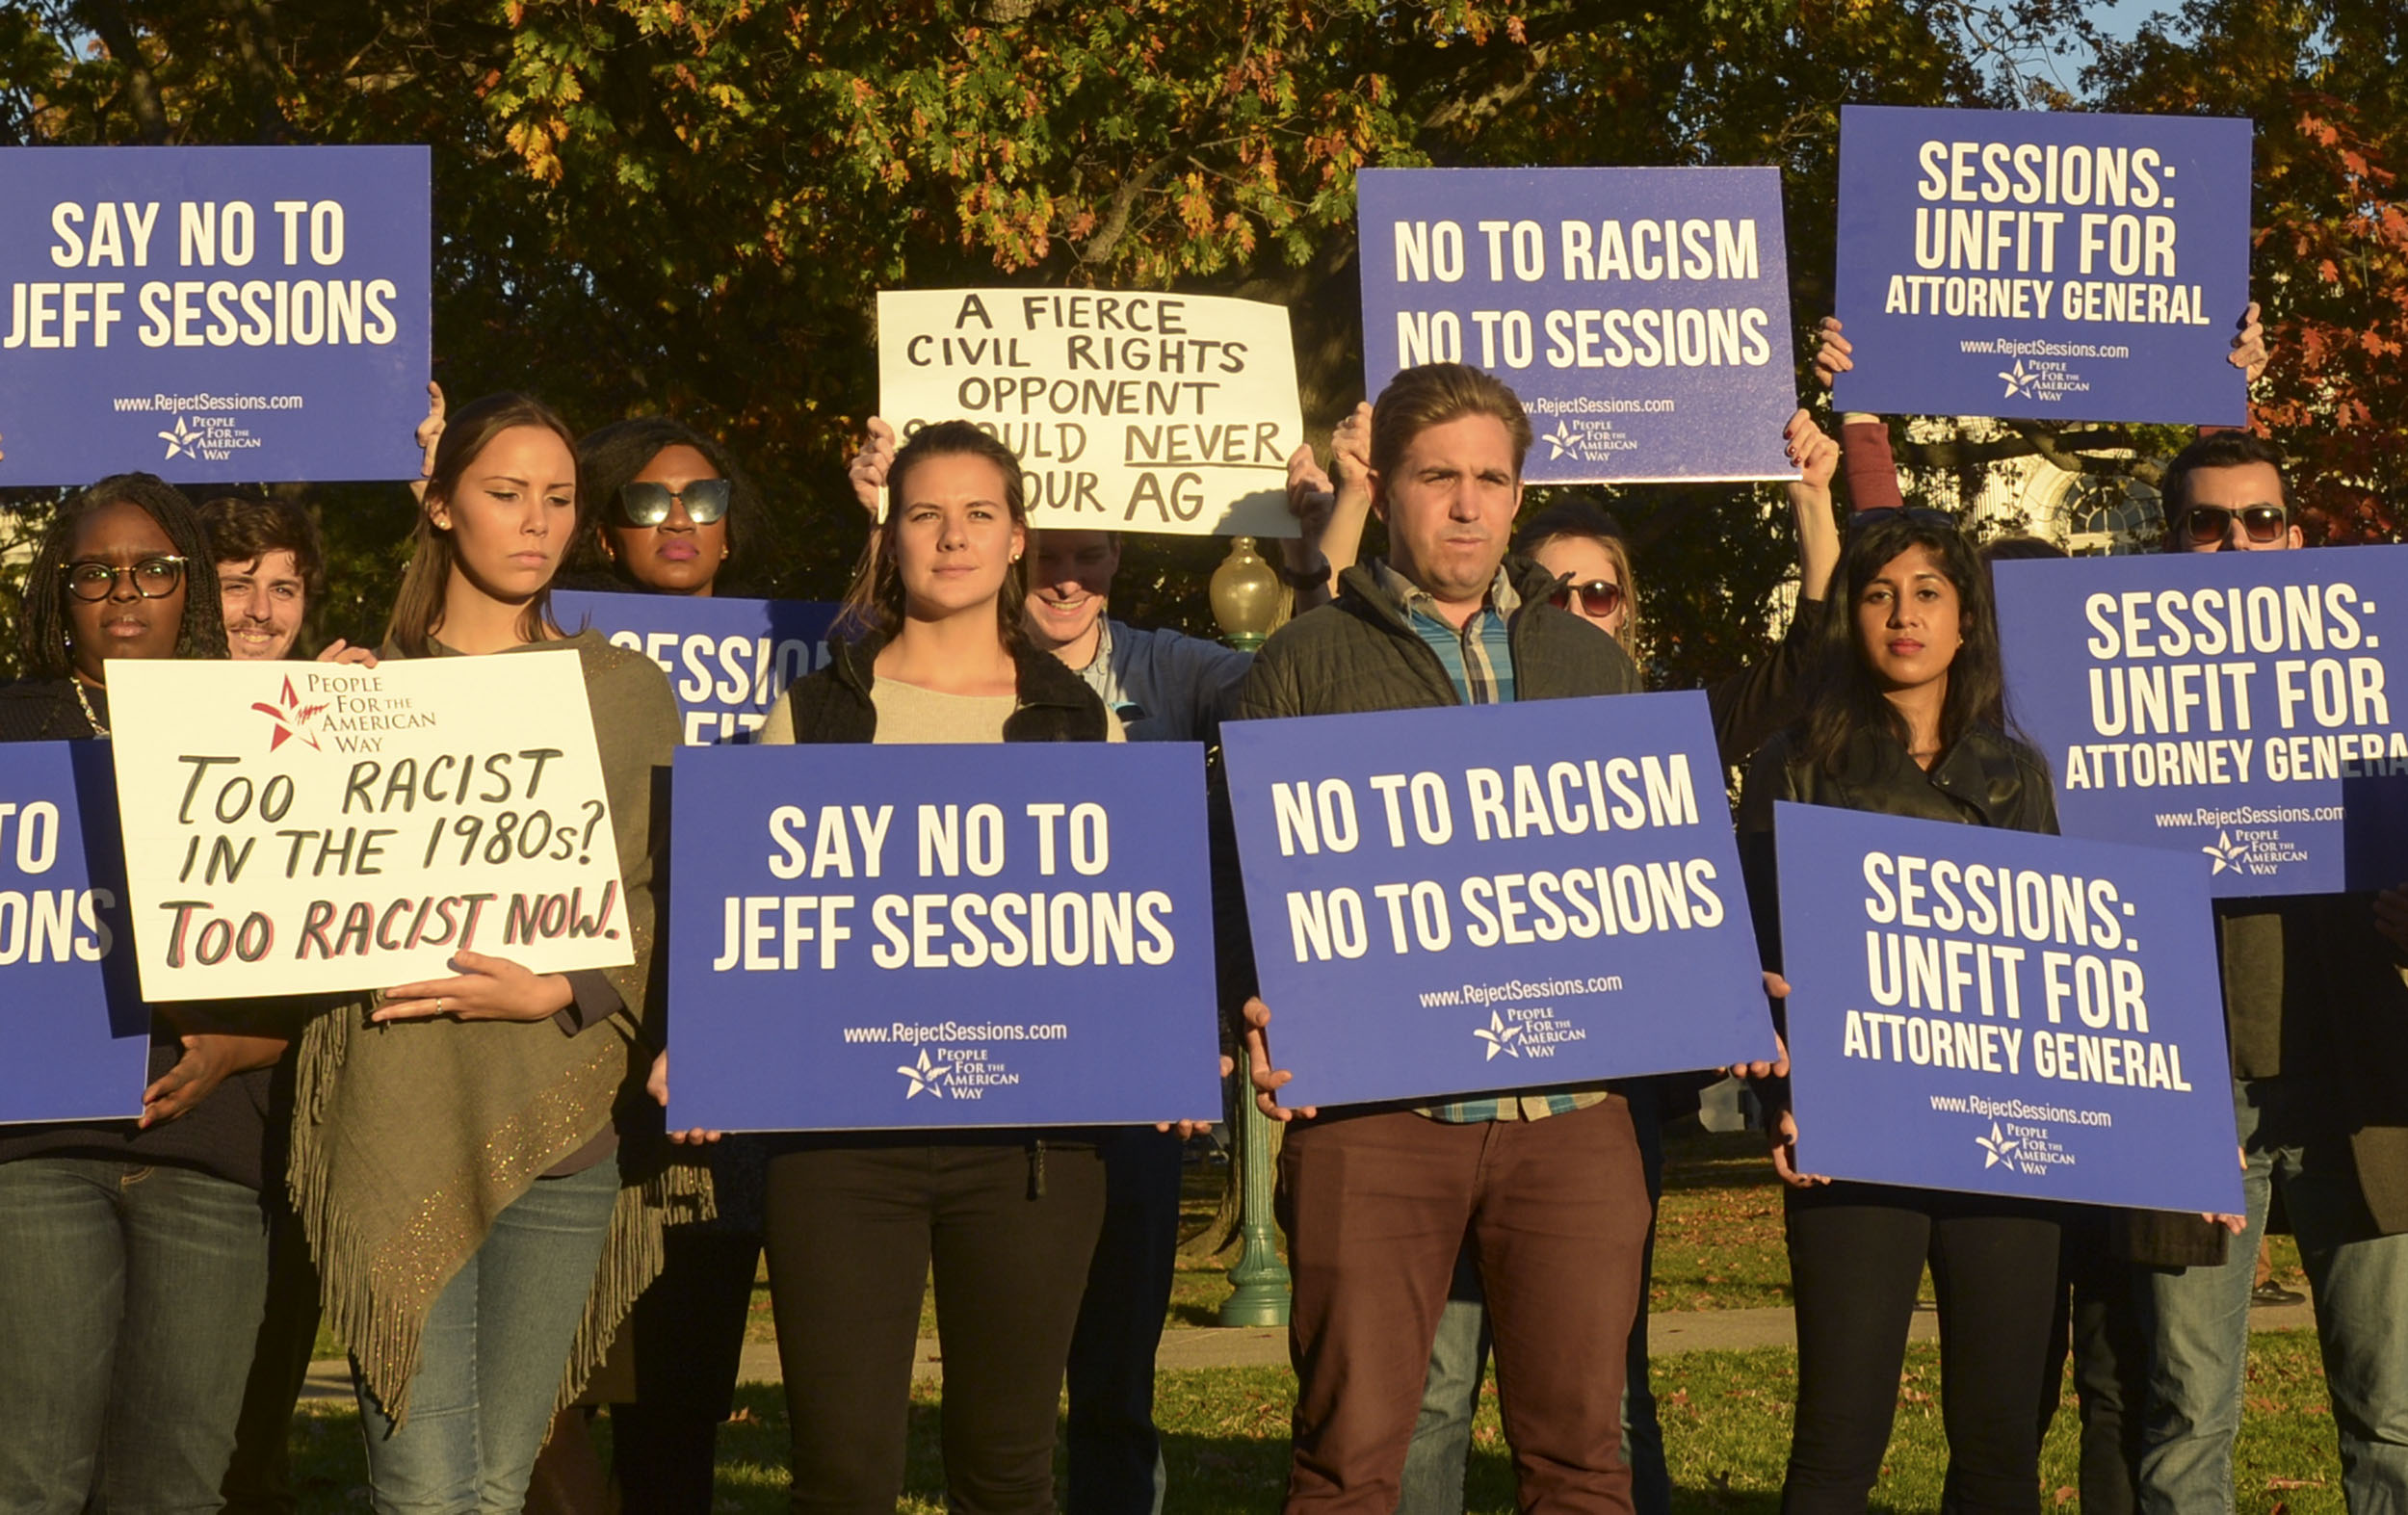 Activists Call On Senate To Reject Jeff Sessions As Attorney General